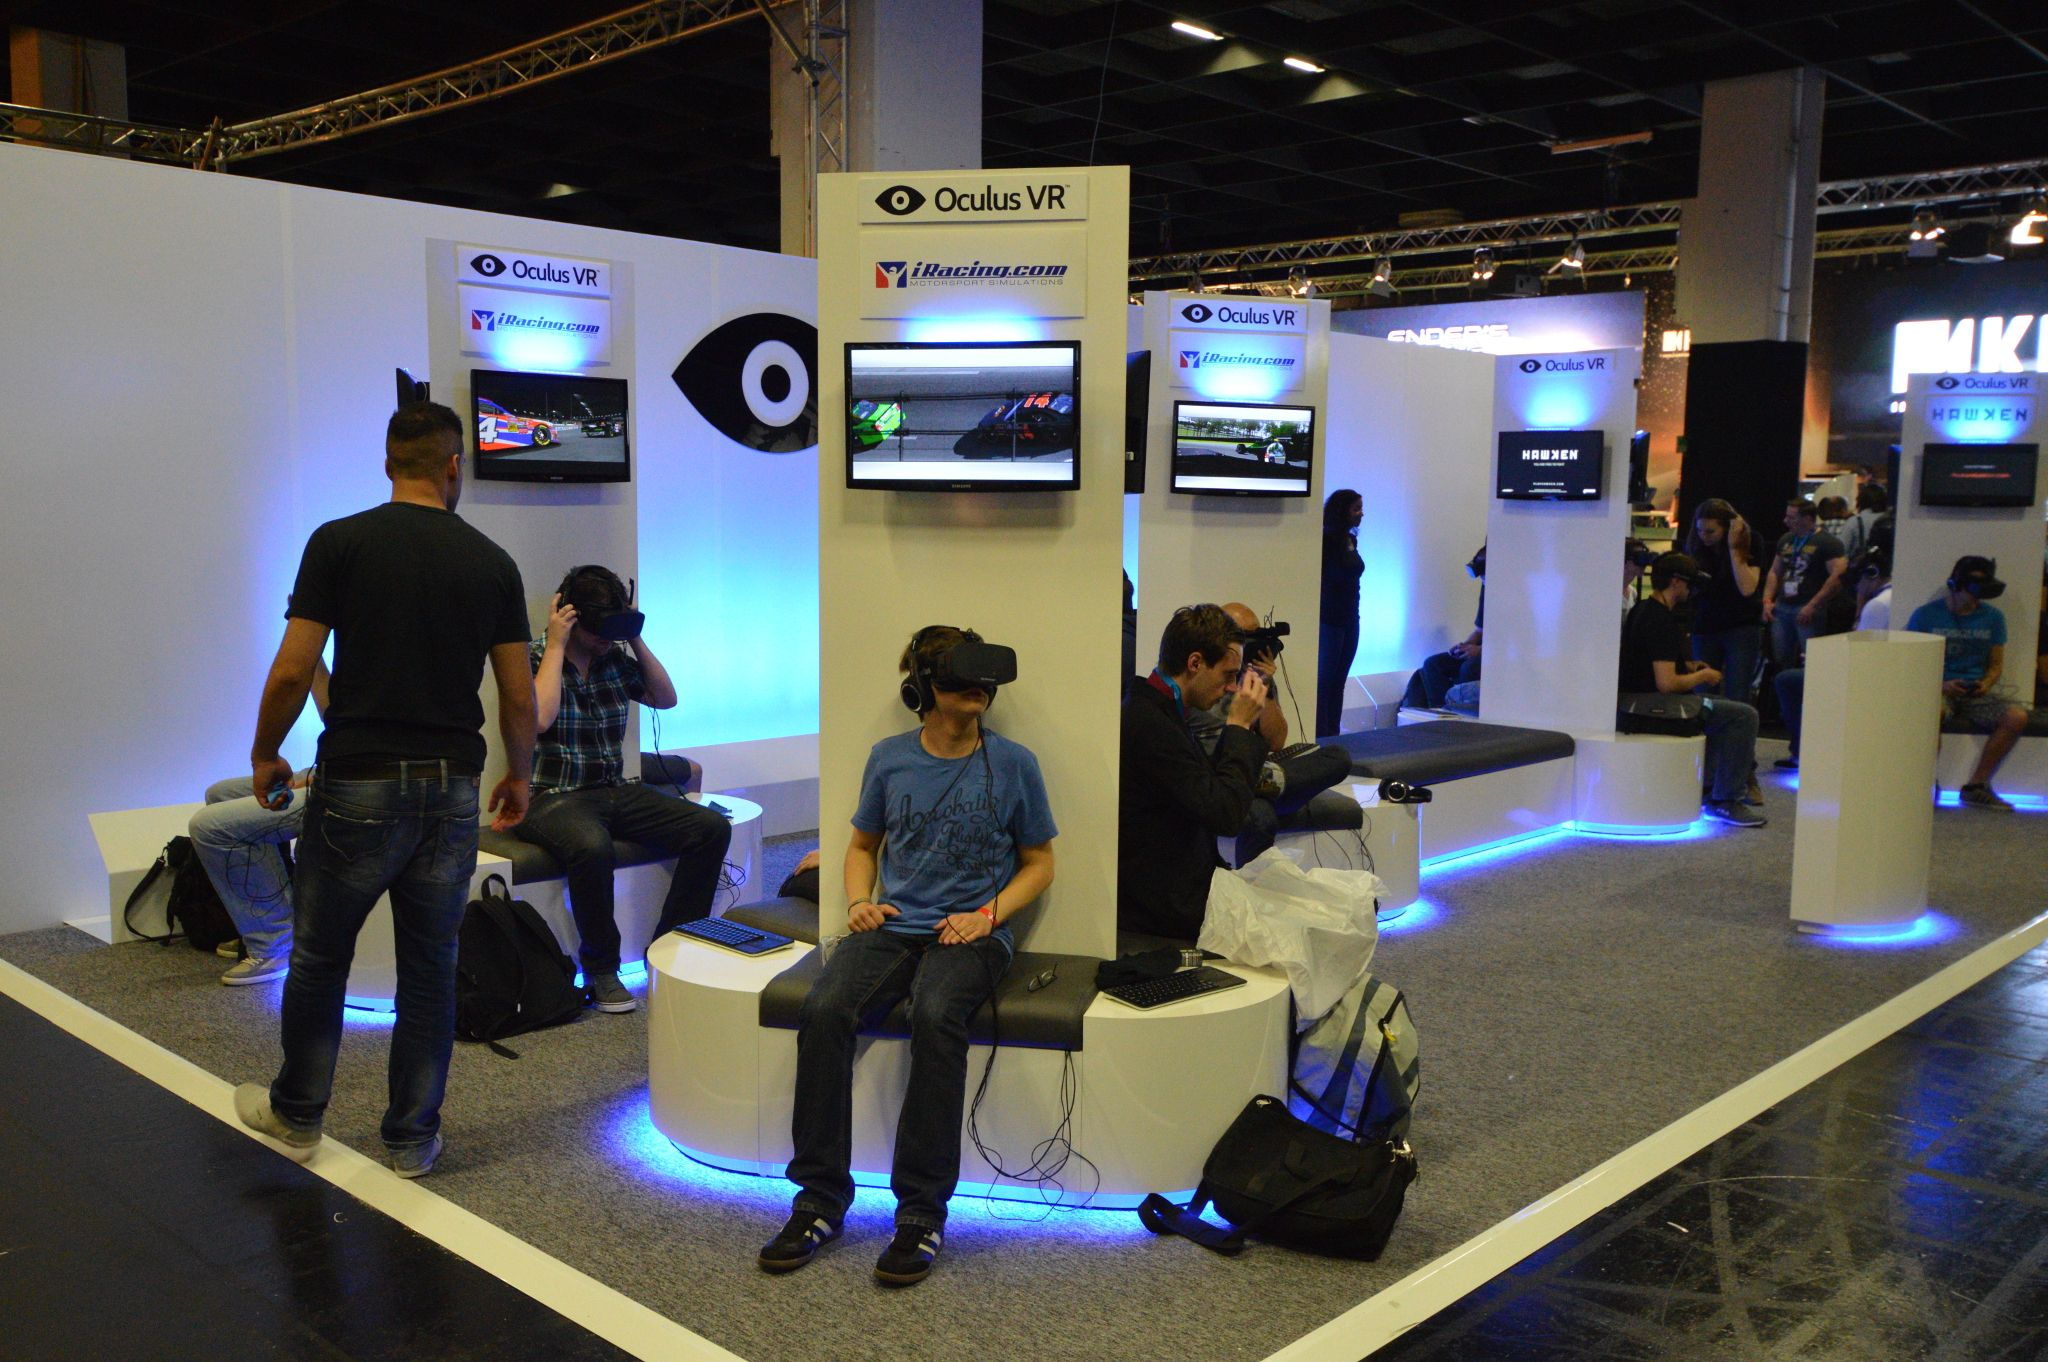 There S One Genre That Seems To Be Rushing To Adopt The Oculus Rift Racing Simulations We Round Them All Up Event Booth Video Game Rooms Trade Show Design